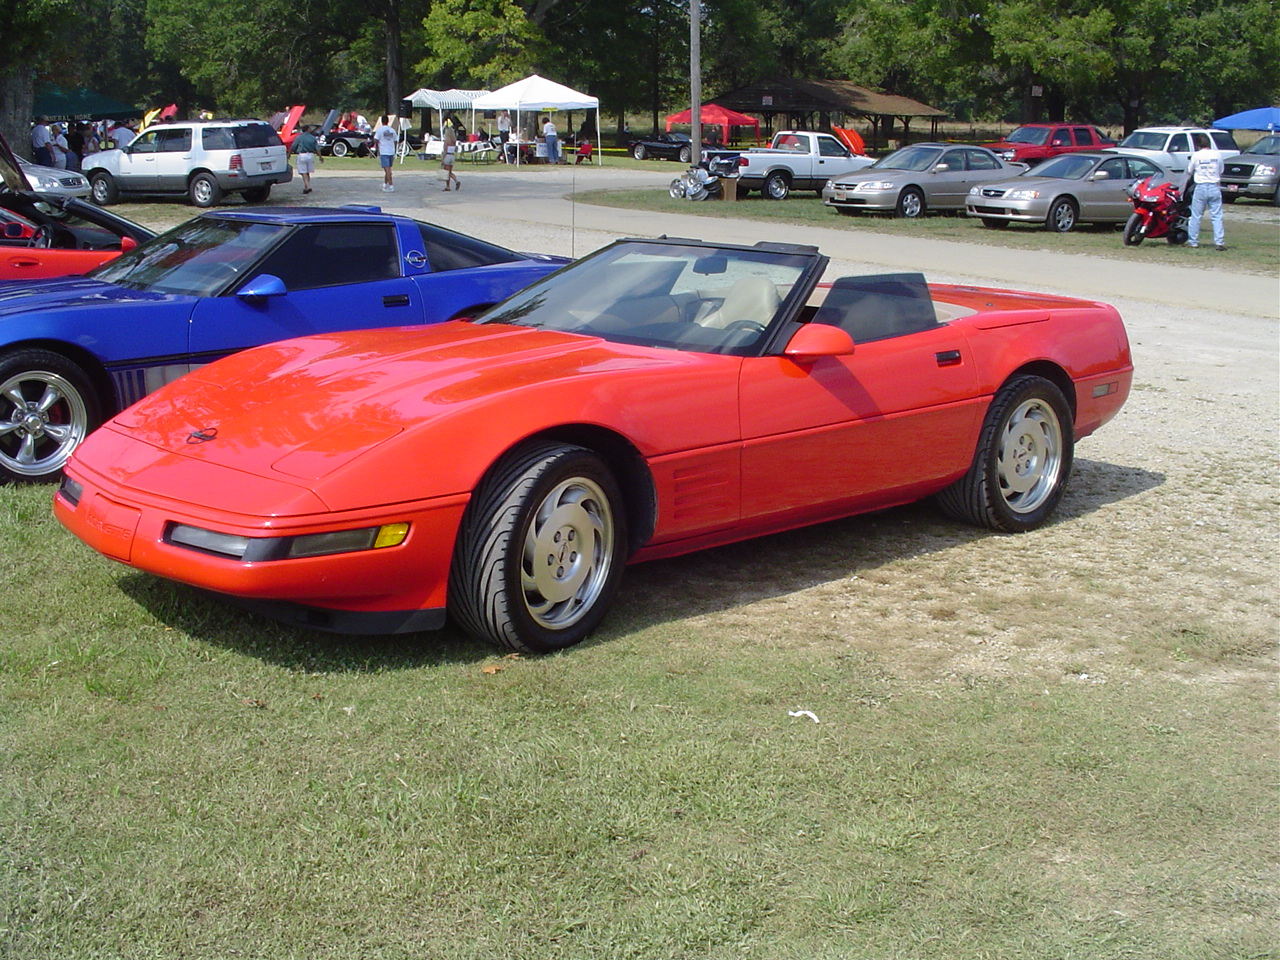 1994 Chevrolet Corvette Convertible, 26 September 2004